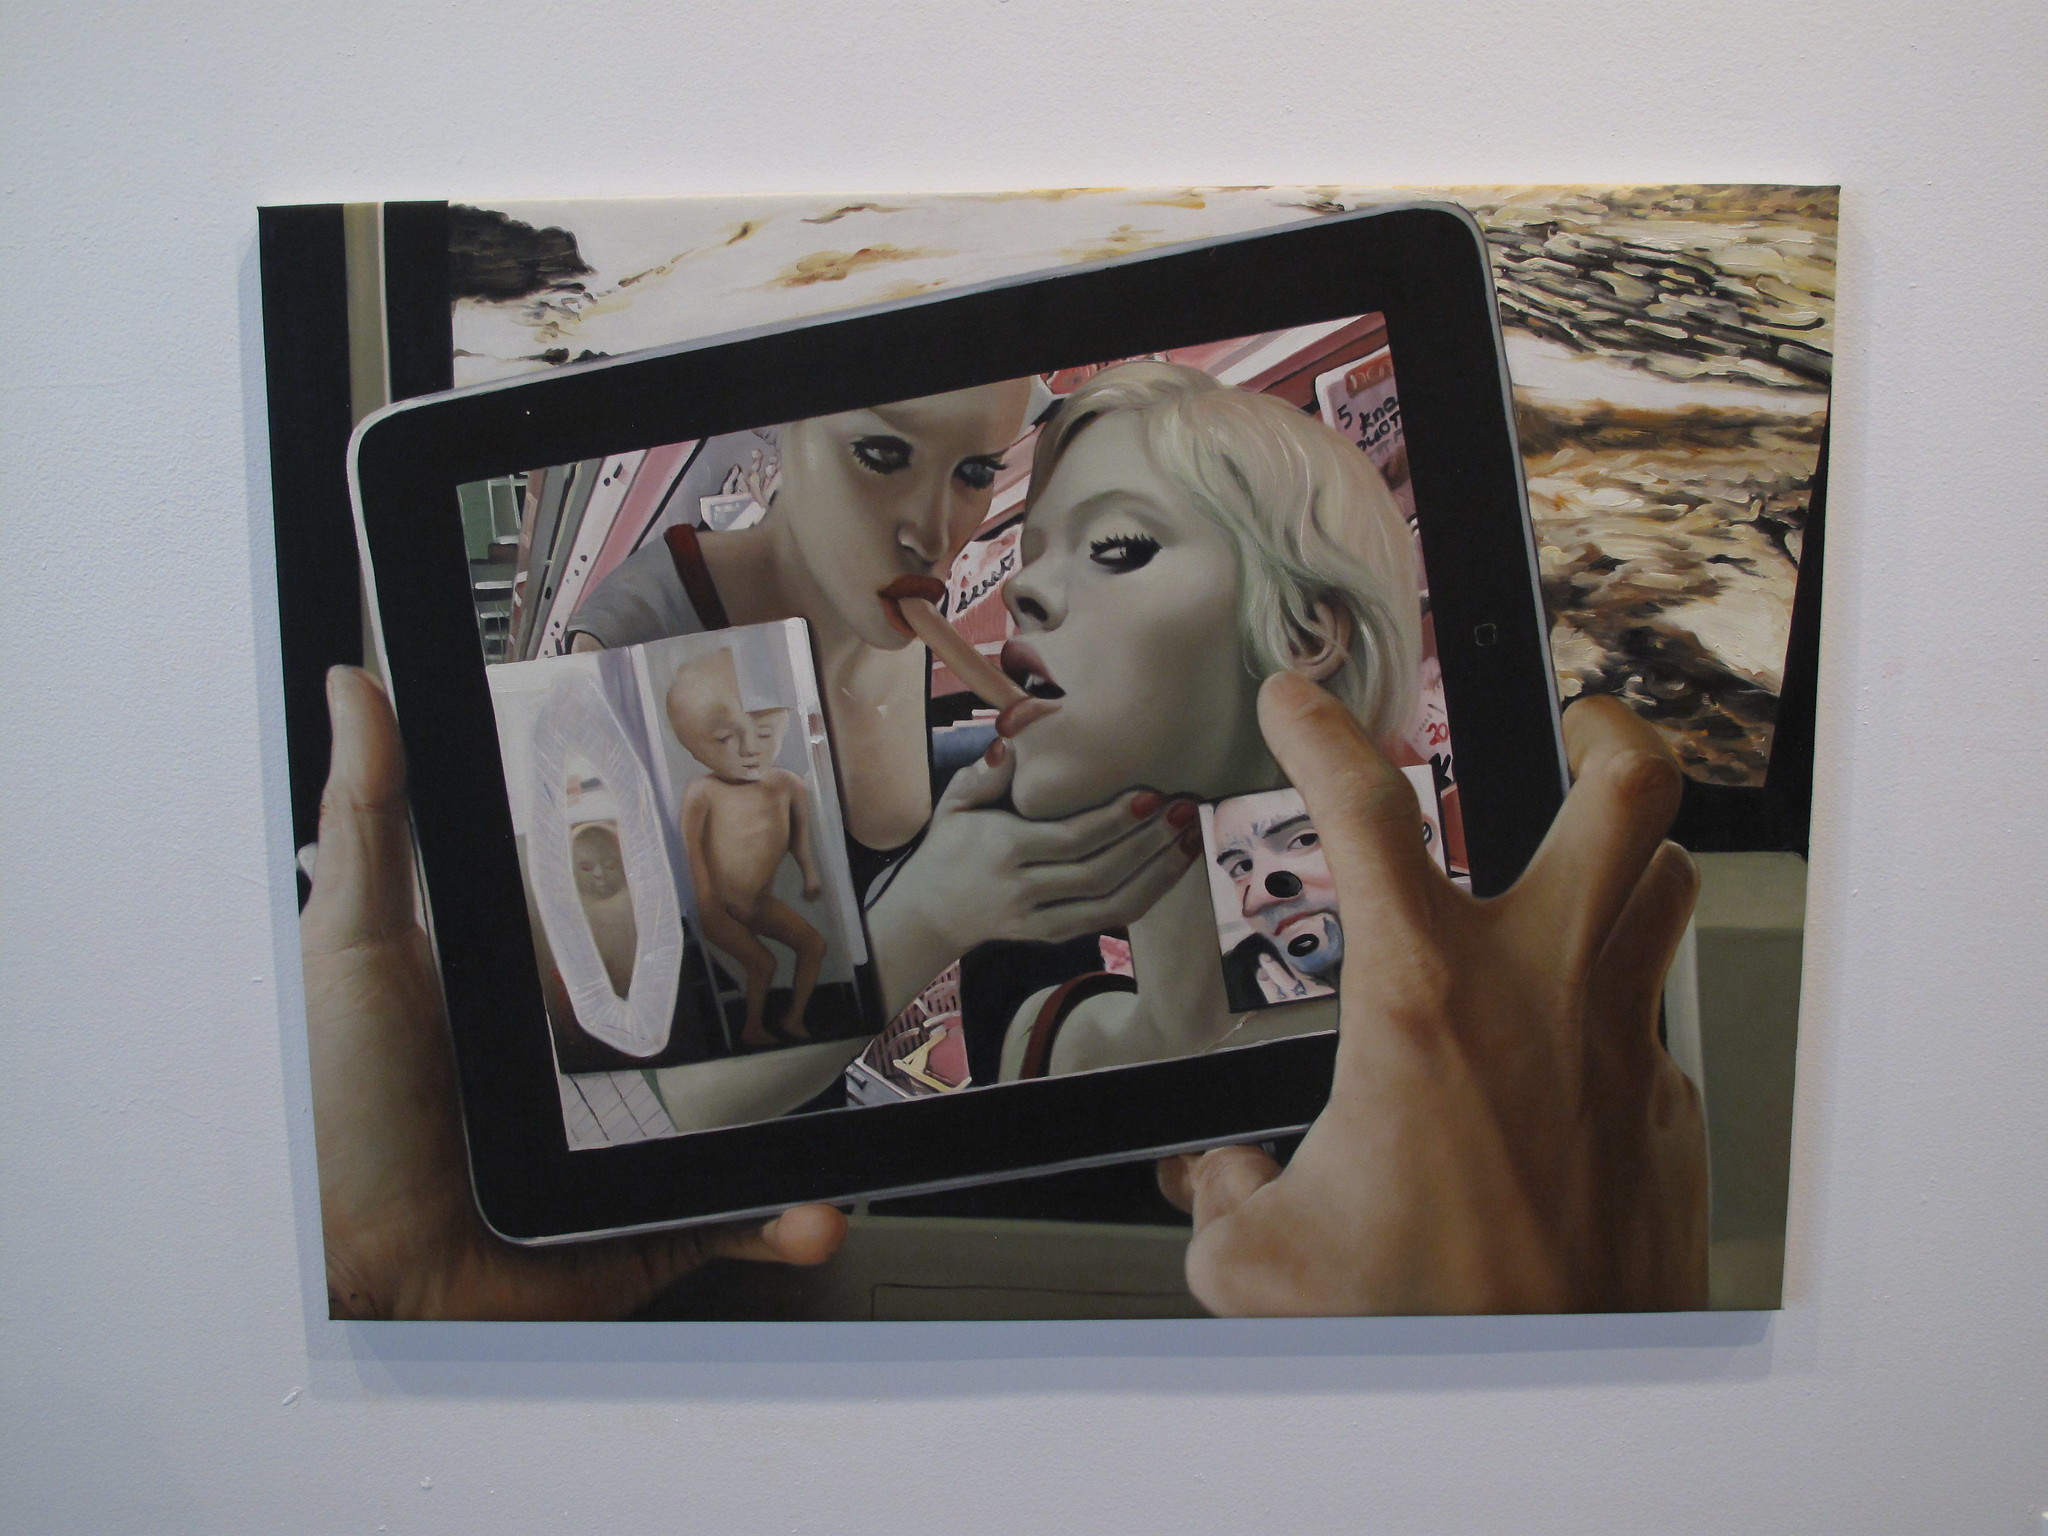 Painting of a photo of two people eating a hotdog on a tablet